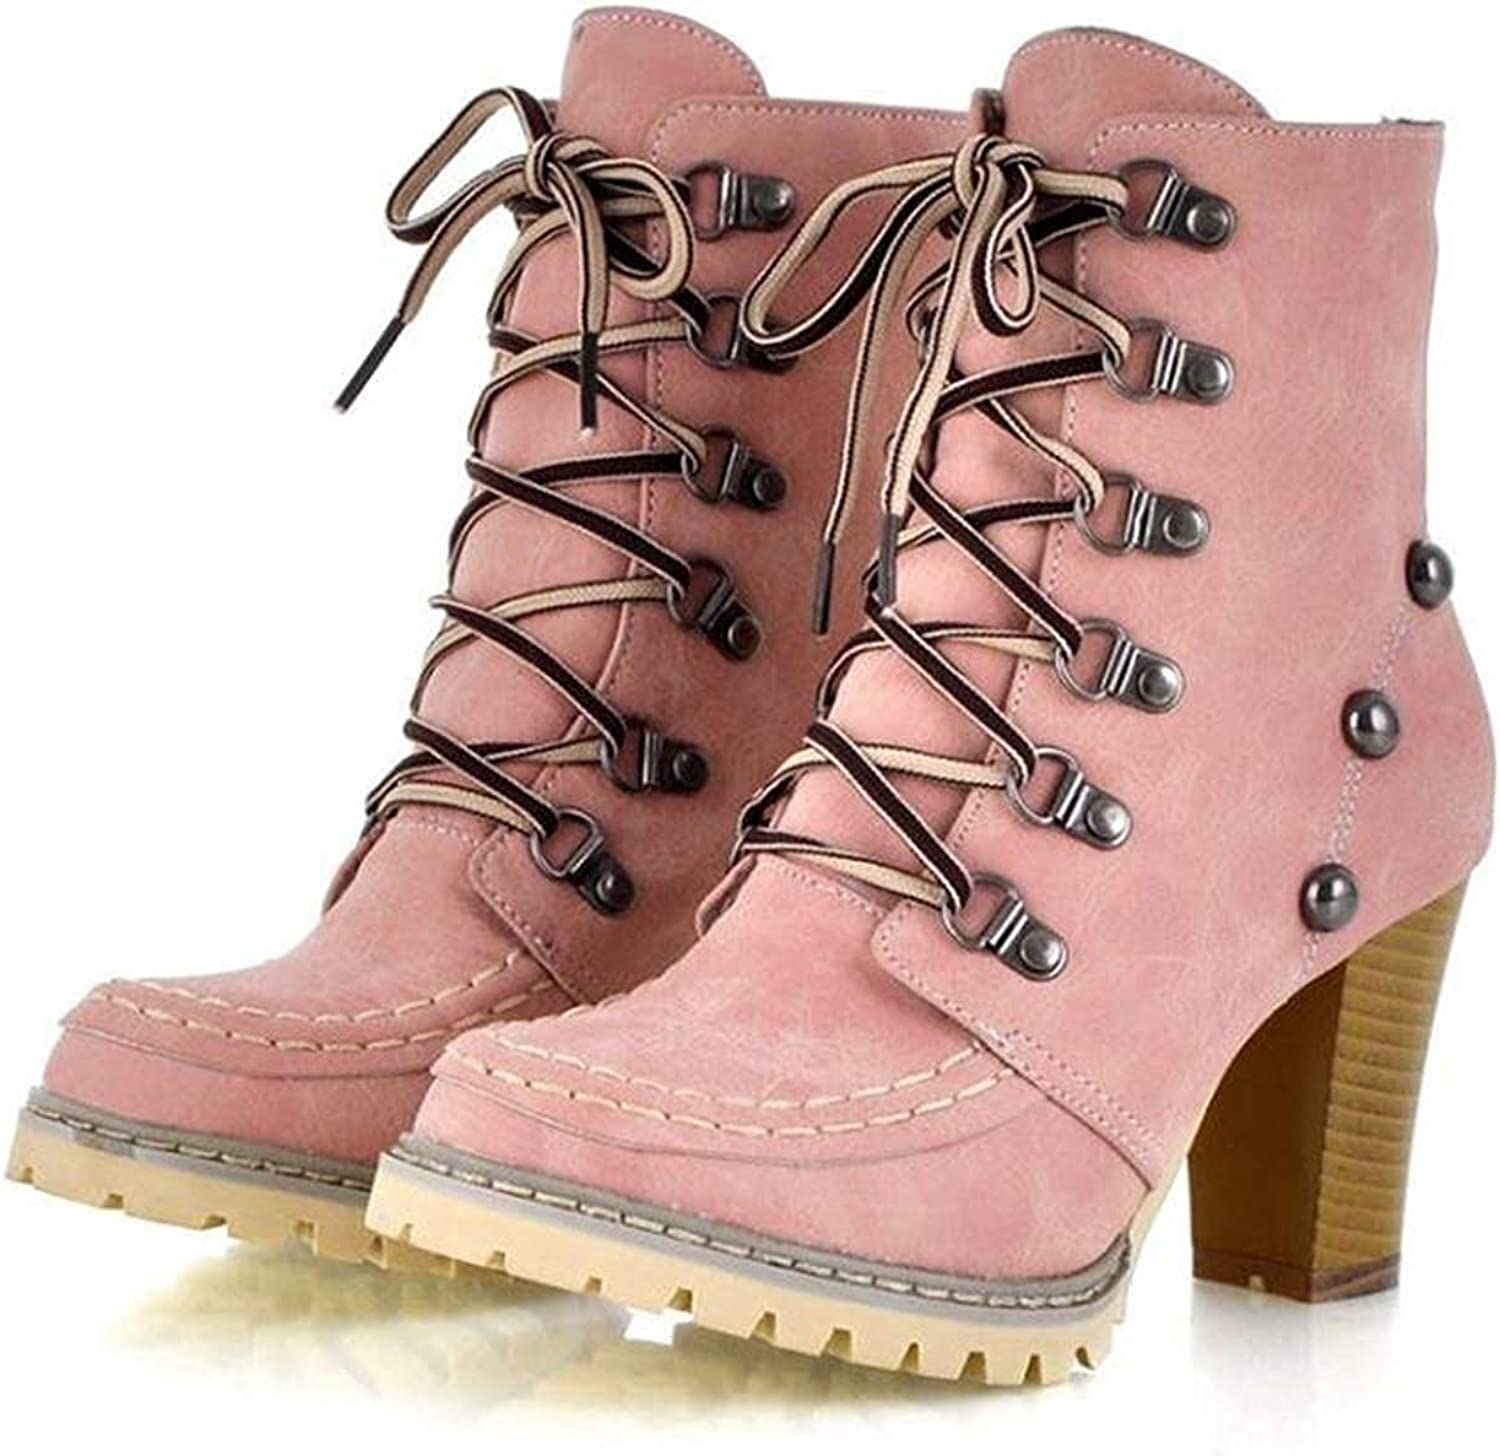 Womens Motorcycle Boots Winter Trendy Lace-up and Rivets Design Chunky High Heel Ankle Boots